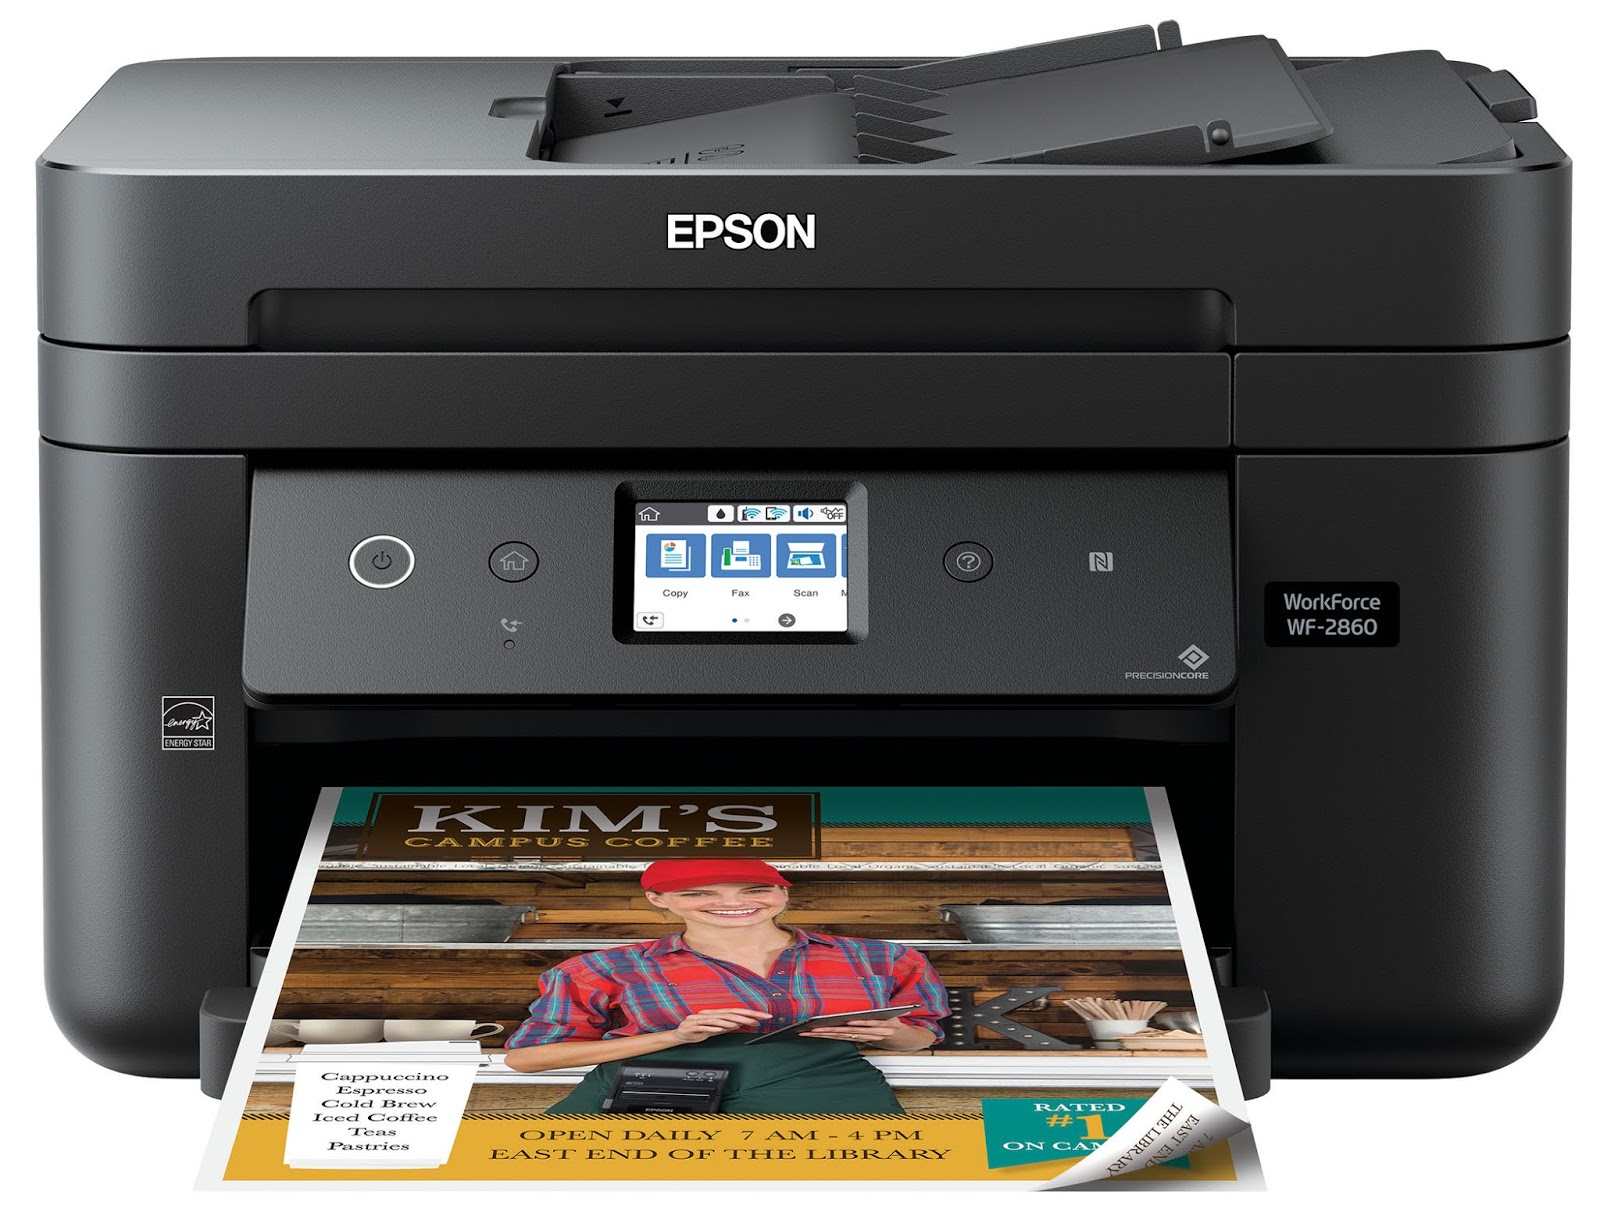 ed3ab27c4 We were really surprised at the accessible price tag of this All-in-One  model and it has a few key features that make it a great fit for our  printing needs ...